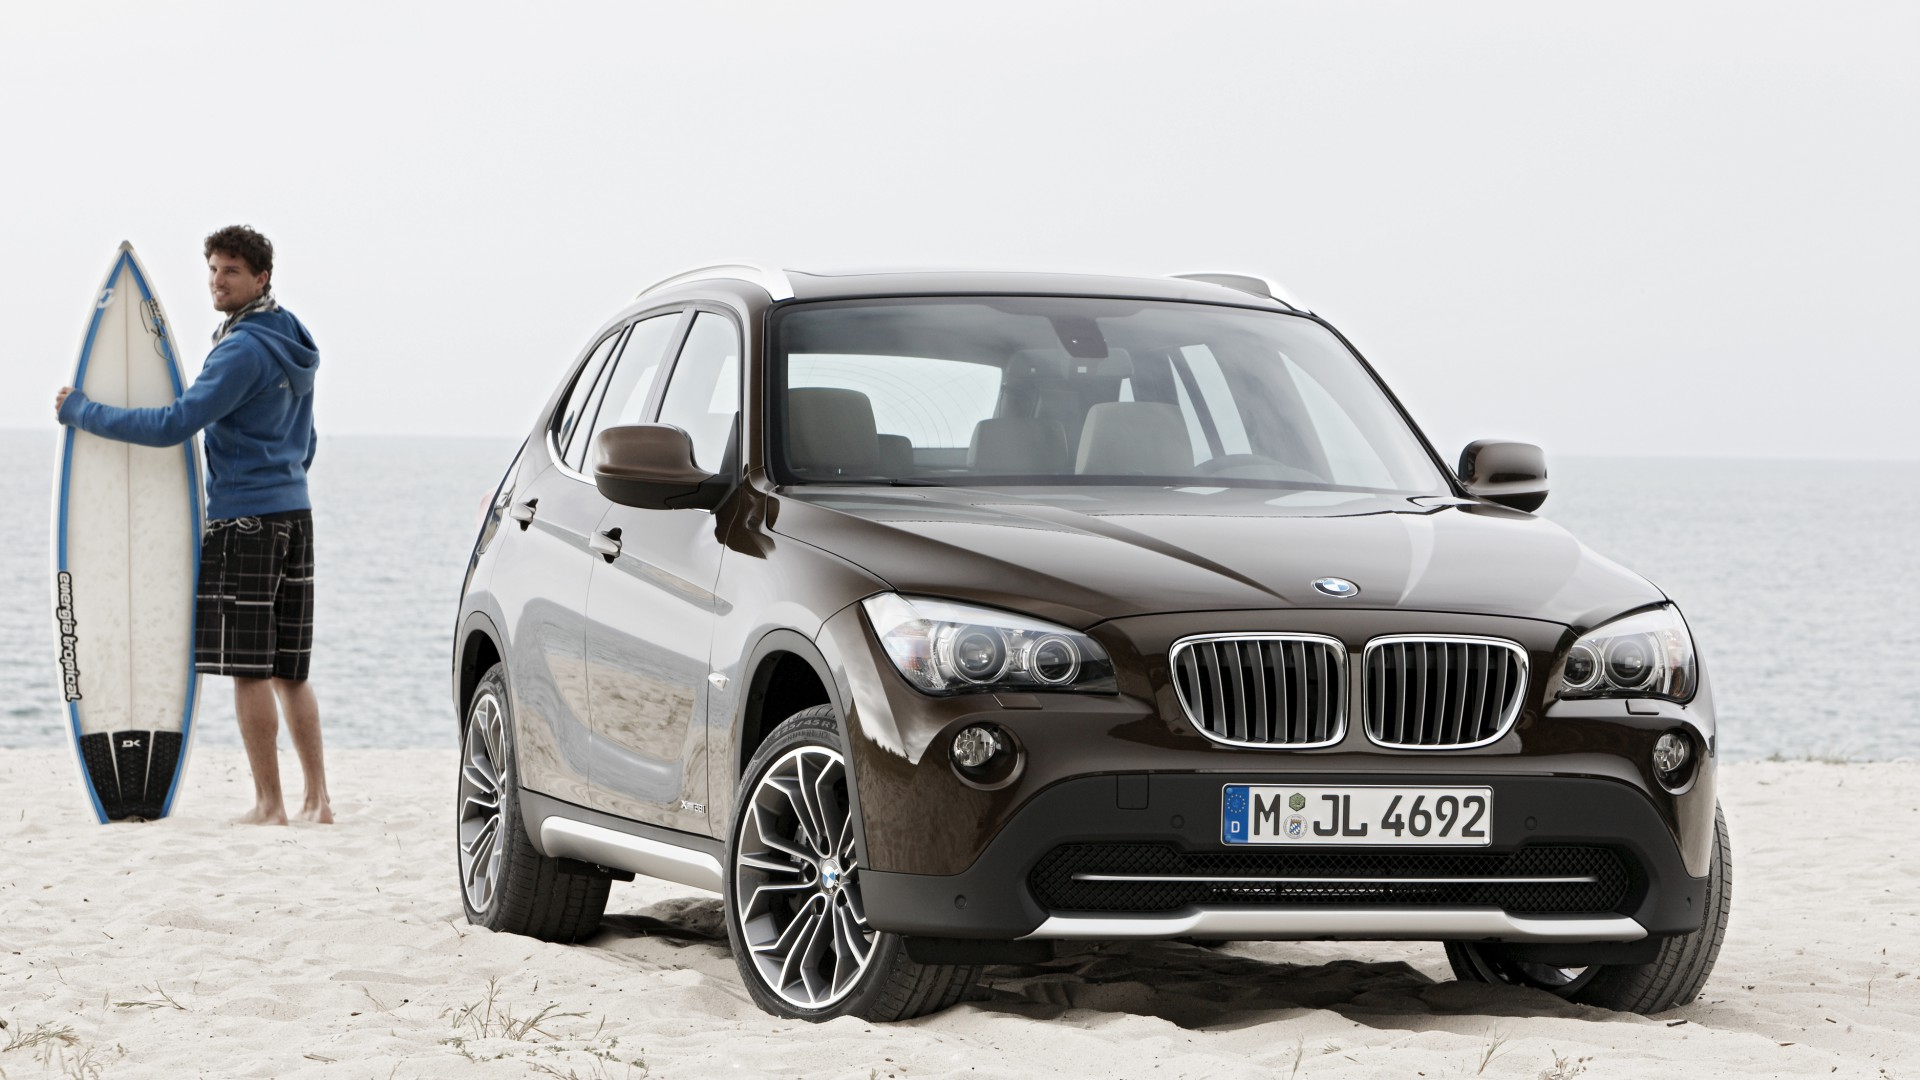 bmw x1 wallpaper cars bikes bmw x1 crossover luxury. Black Bedroom Furniture Sets. Home Design Ideas